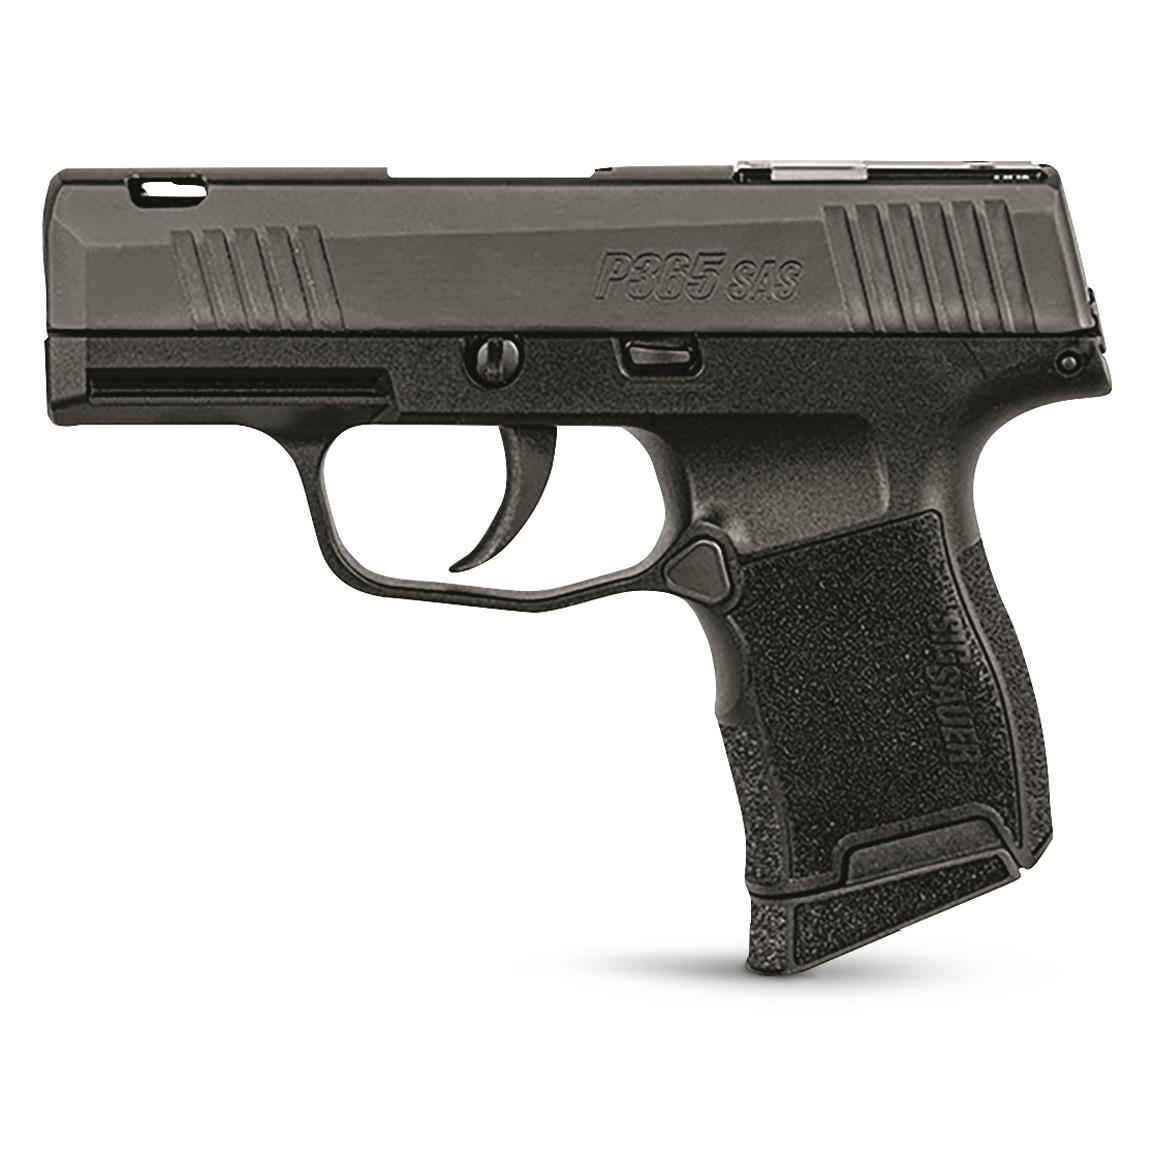 "SIG SAUER P365 SAS, Semi-Automatic, 9mm, 3.1"" Barrel, 10+1 Rounds"